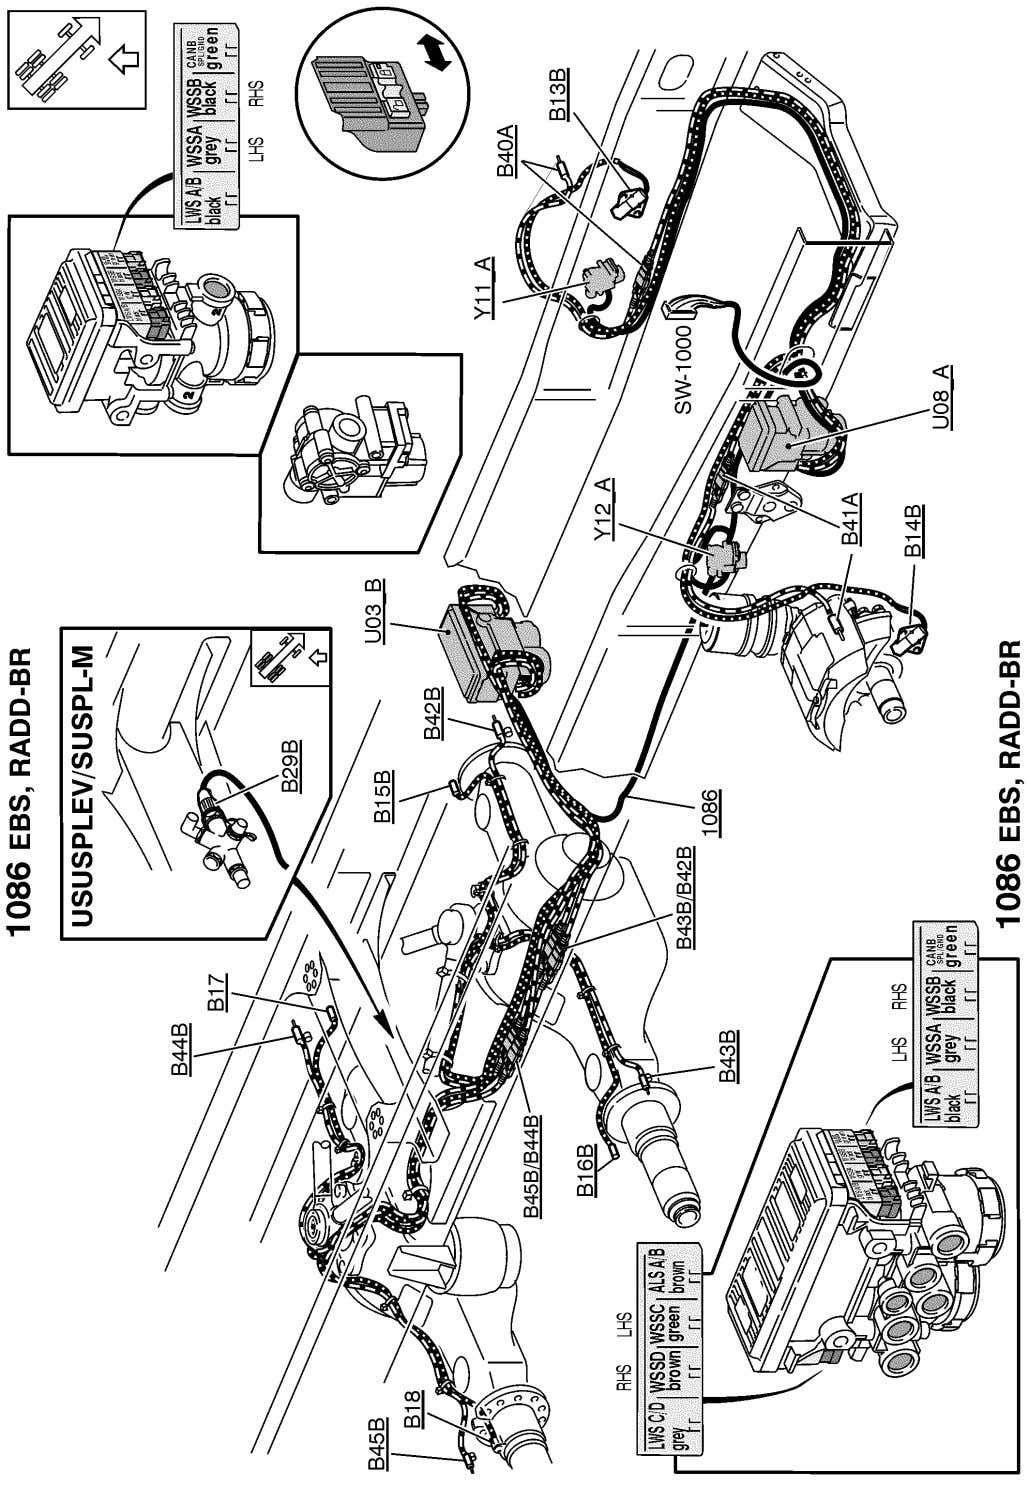 T3021656 Page 188 (298) Wiring diagram